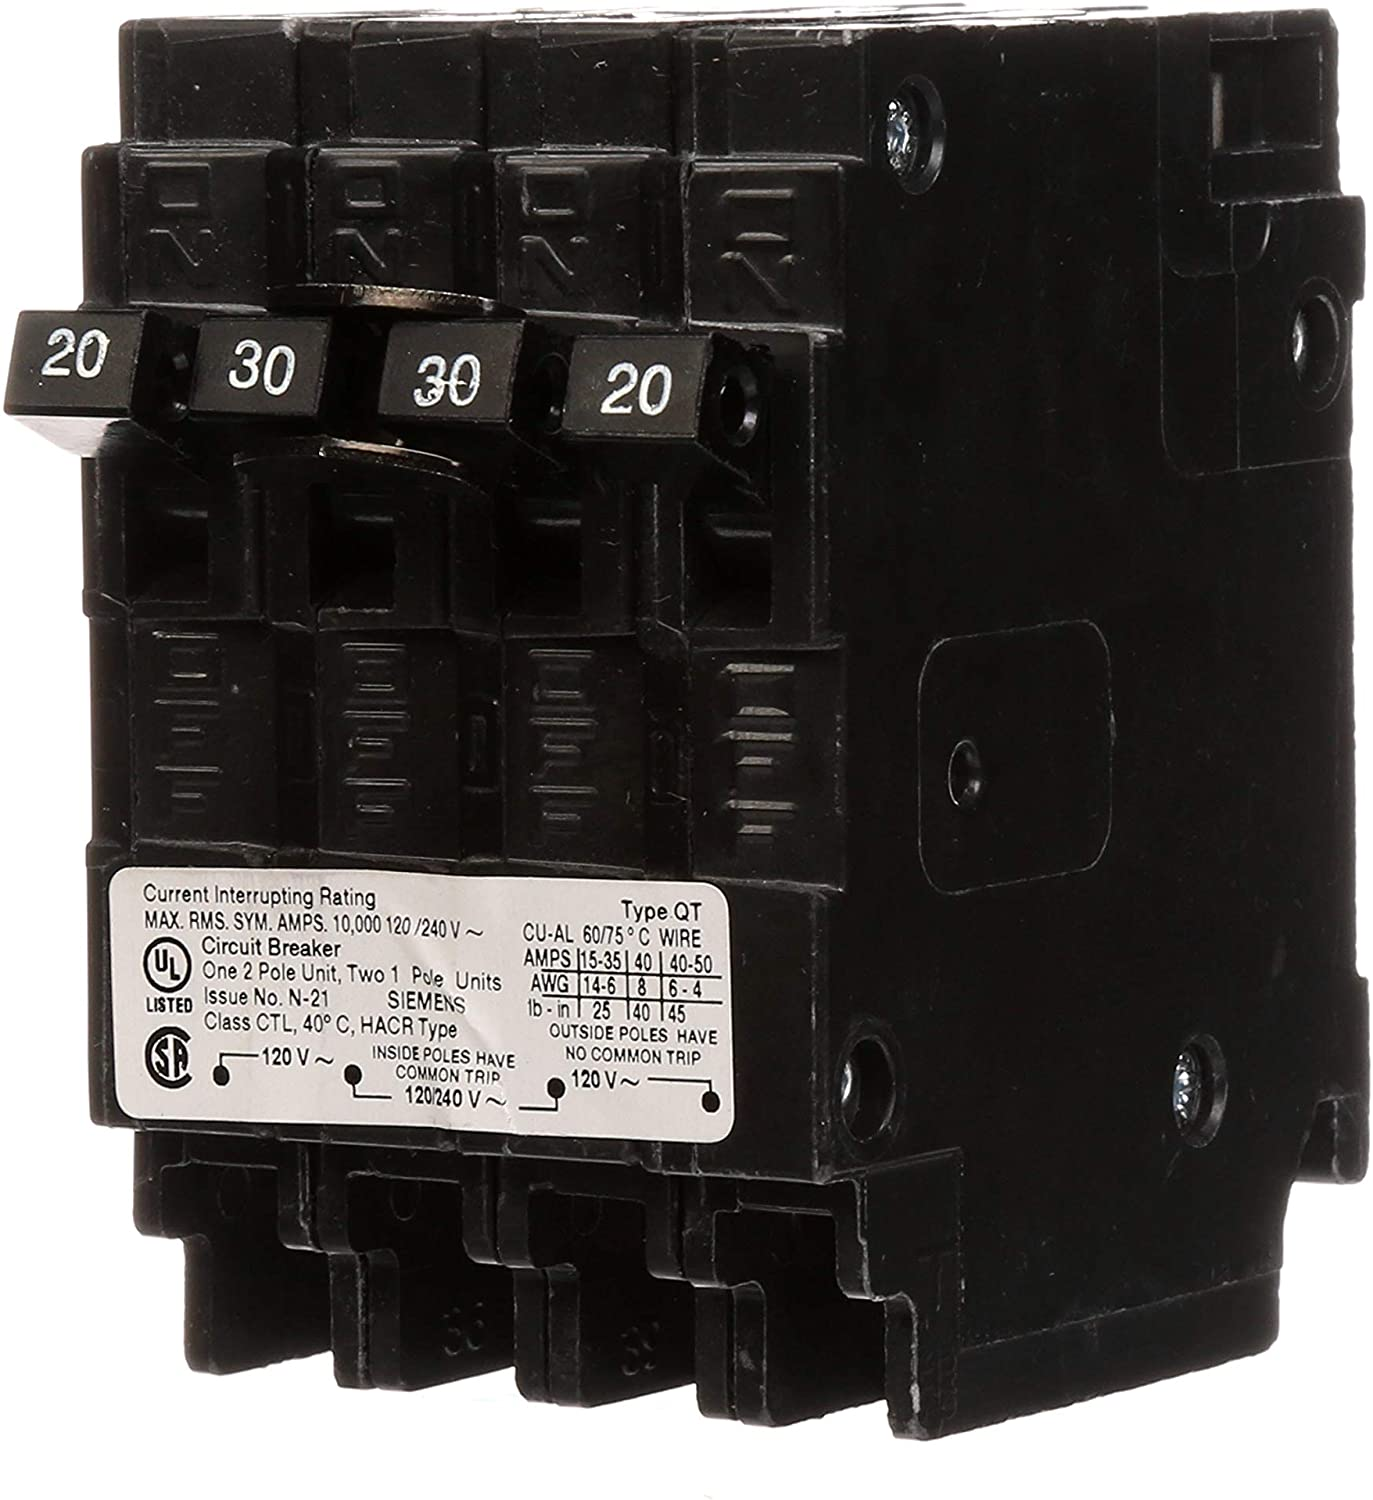 SIEMENS Q22030CT 30 Double Two 20-Amp Single Pole Circuit Breaker, As shown in the image